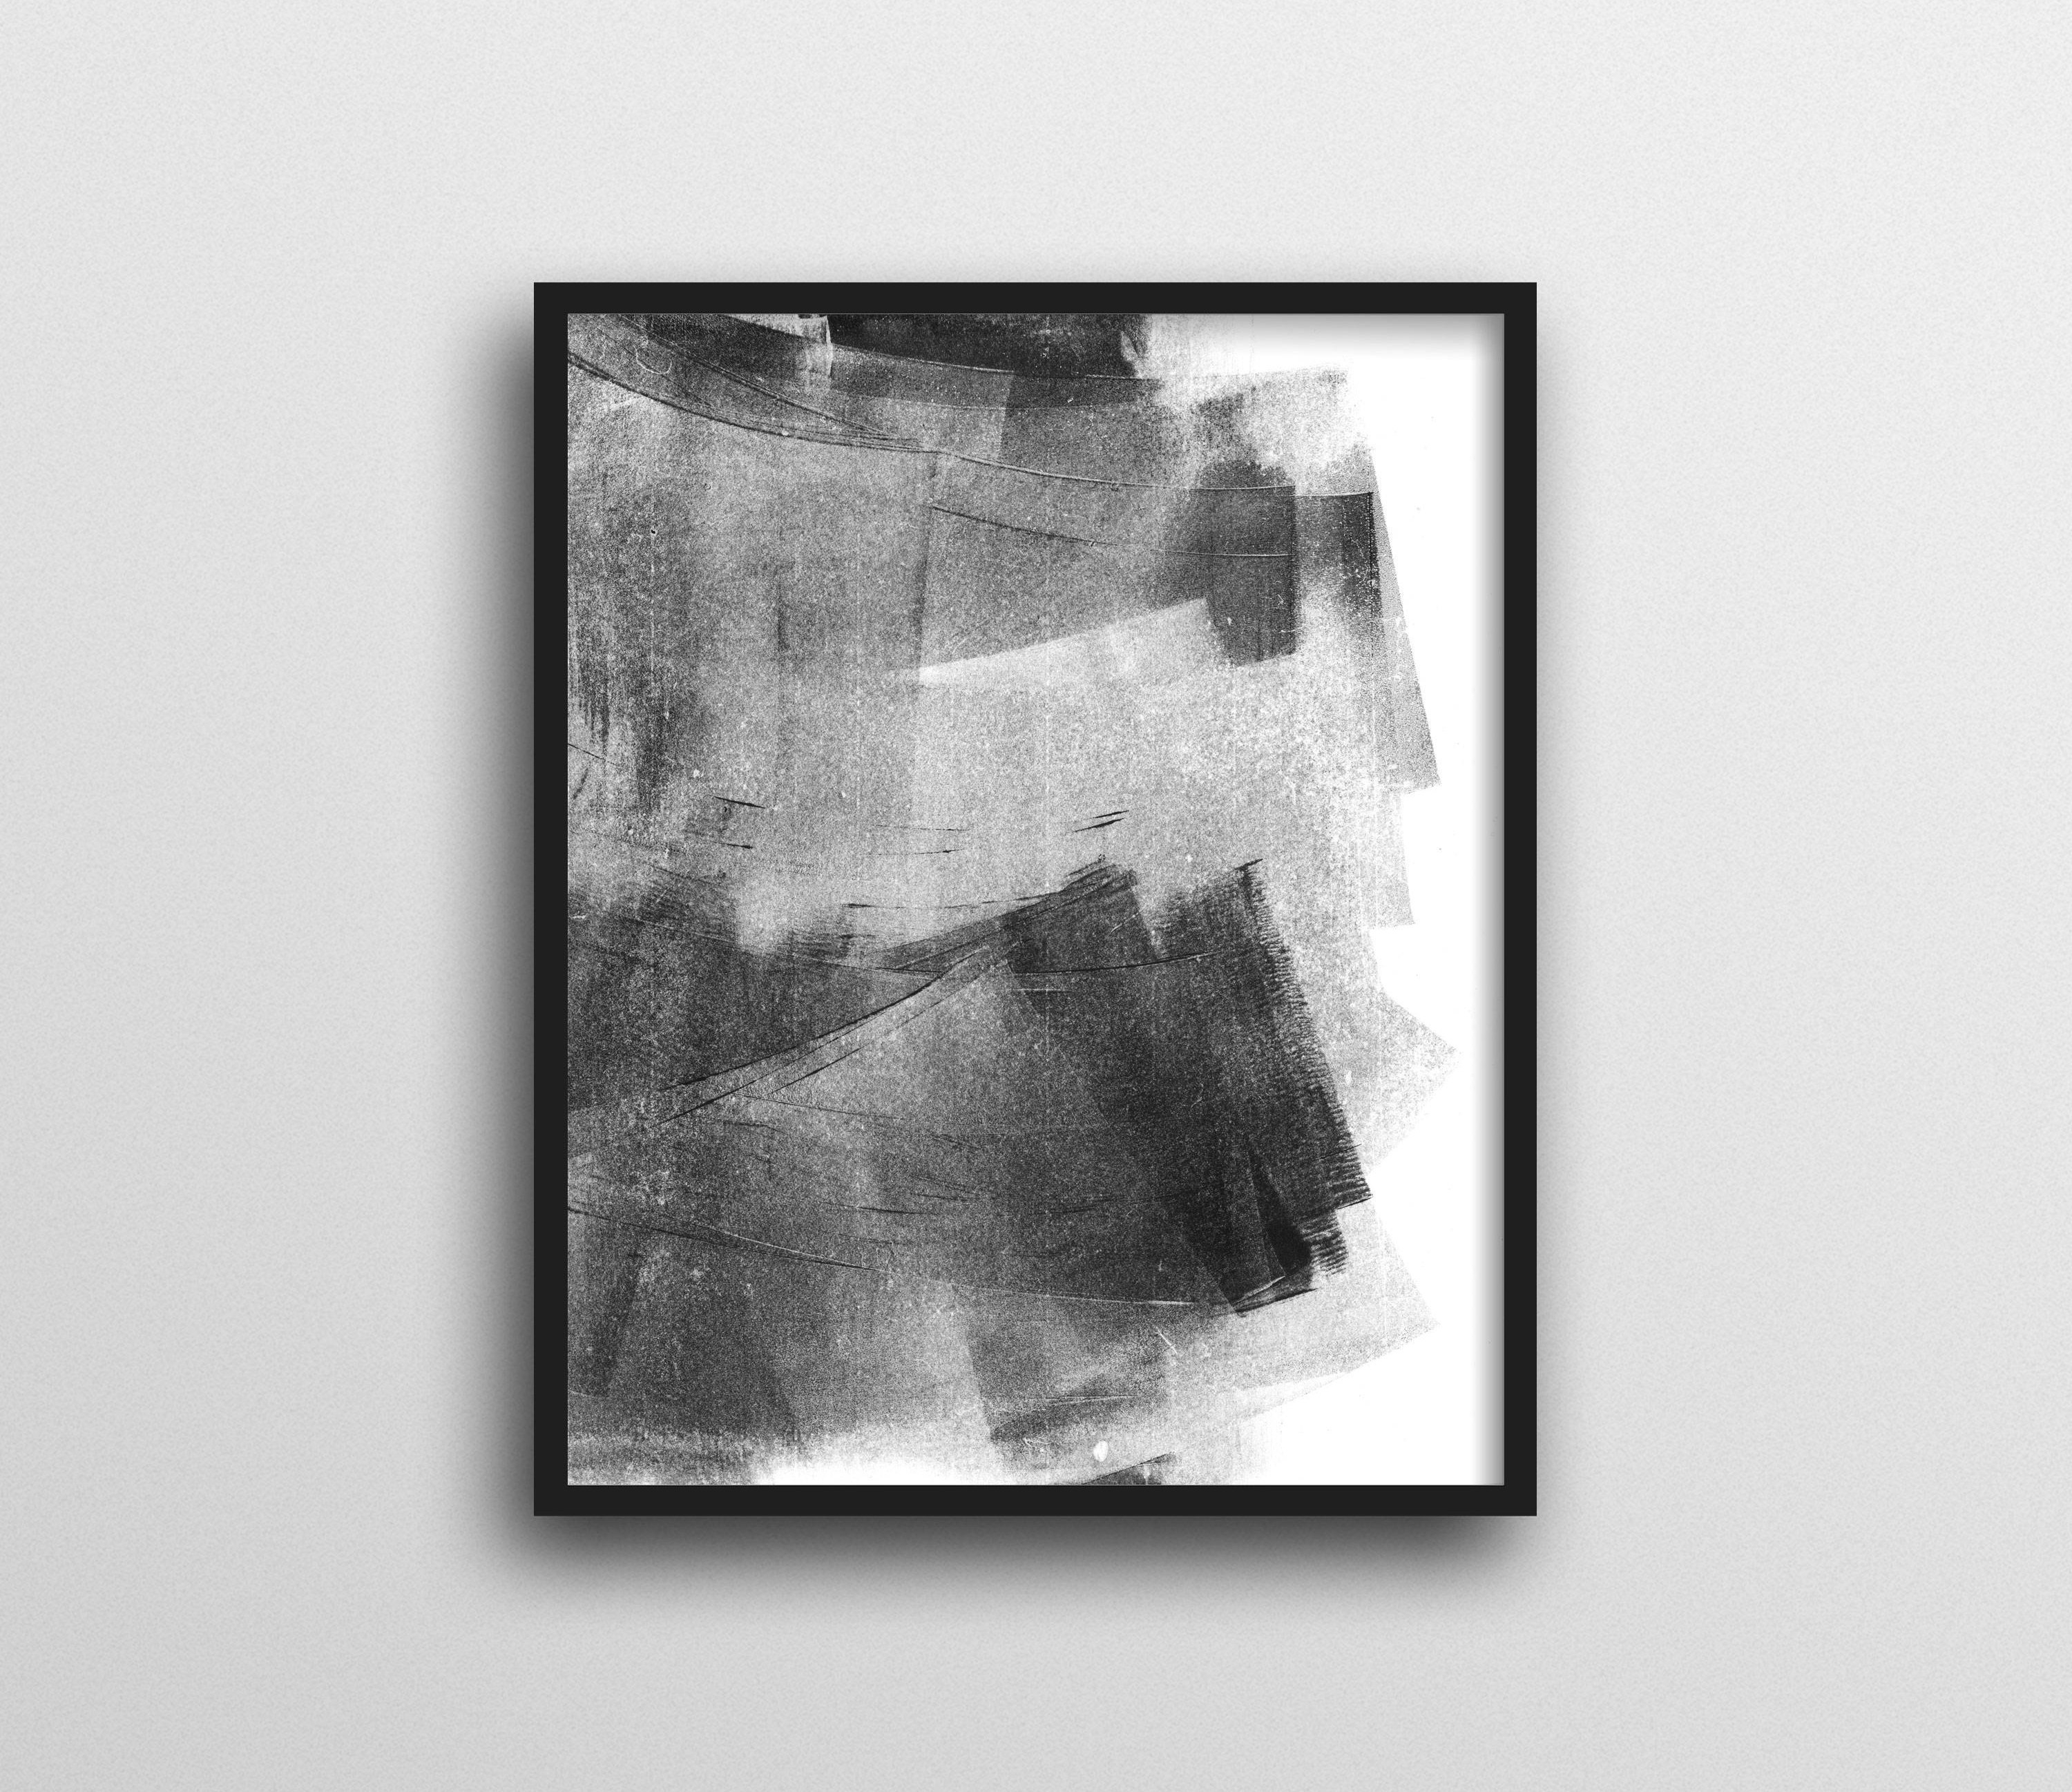 Abstract Art, Black And White Wall Art, Minimalist Painting, Black For Widely Used Black And White Abstract Wall Art (View 12 of 15)